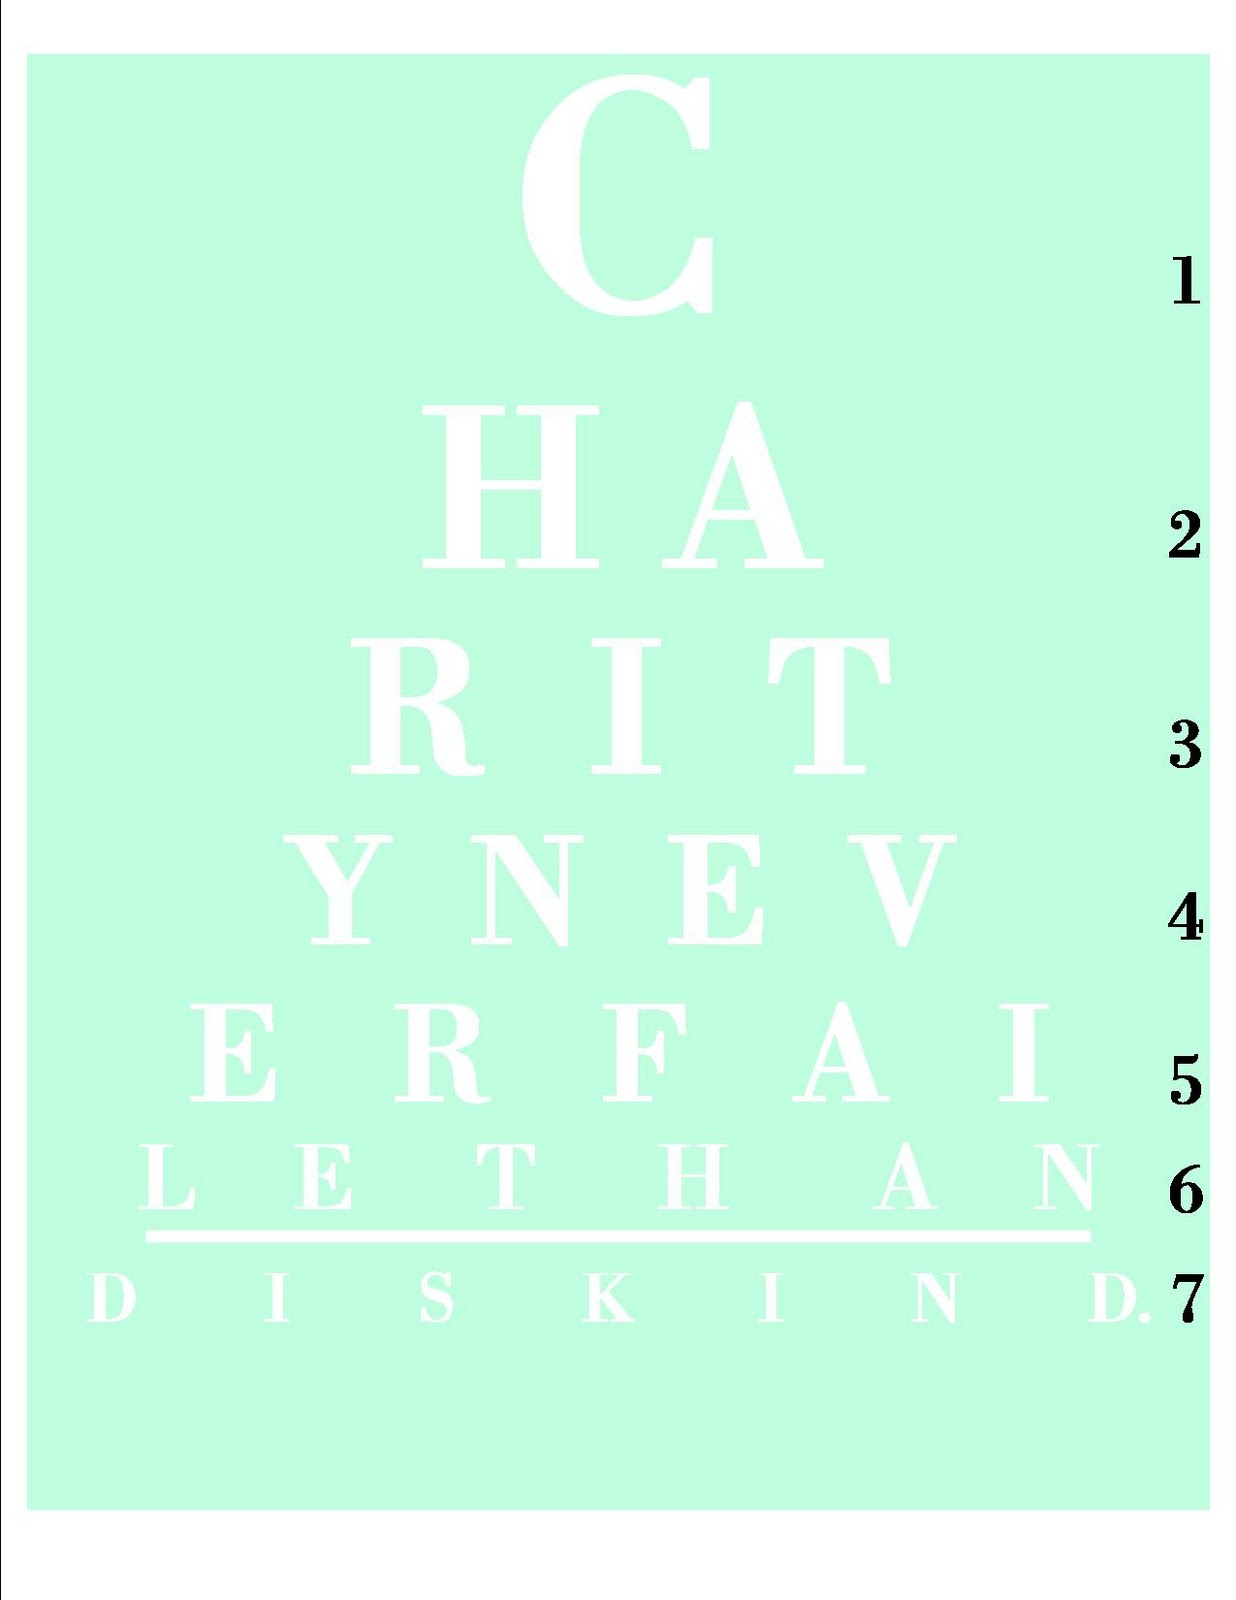 It's just a photo of Persnickety Handheld Snellen Chart Printable